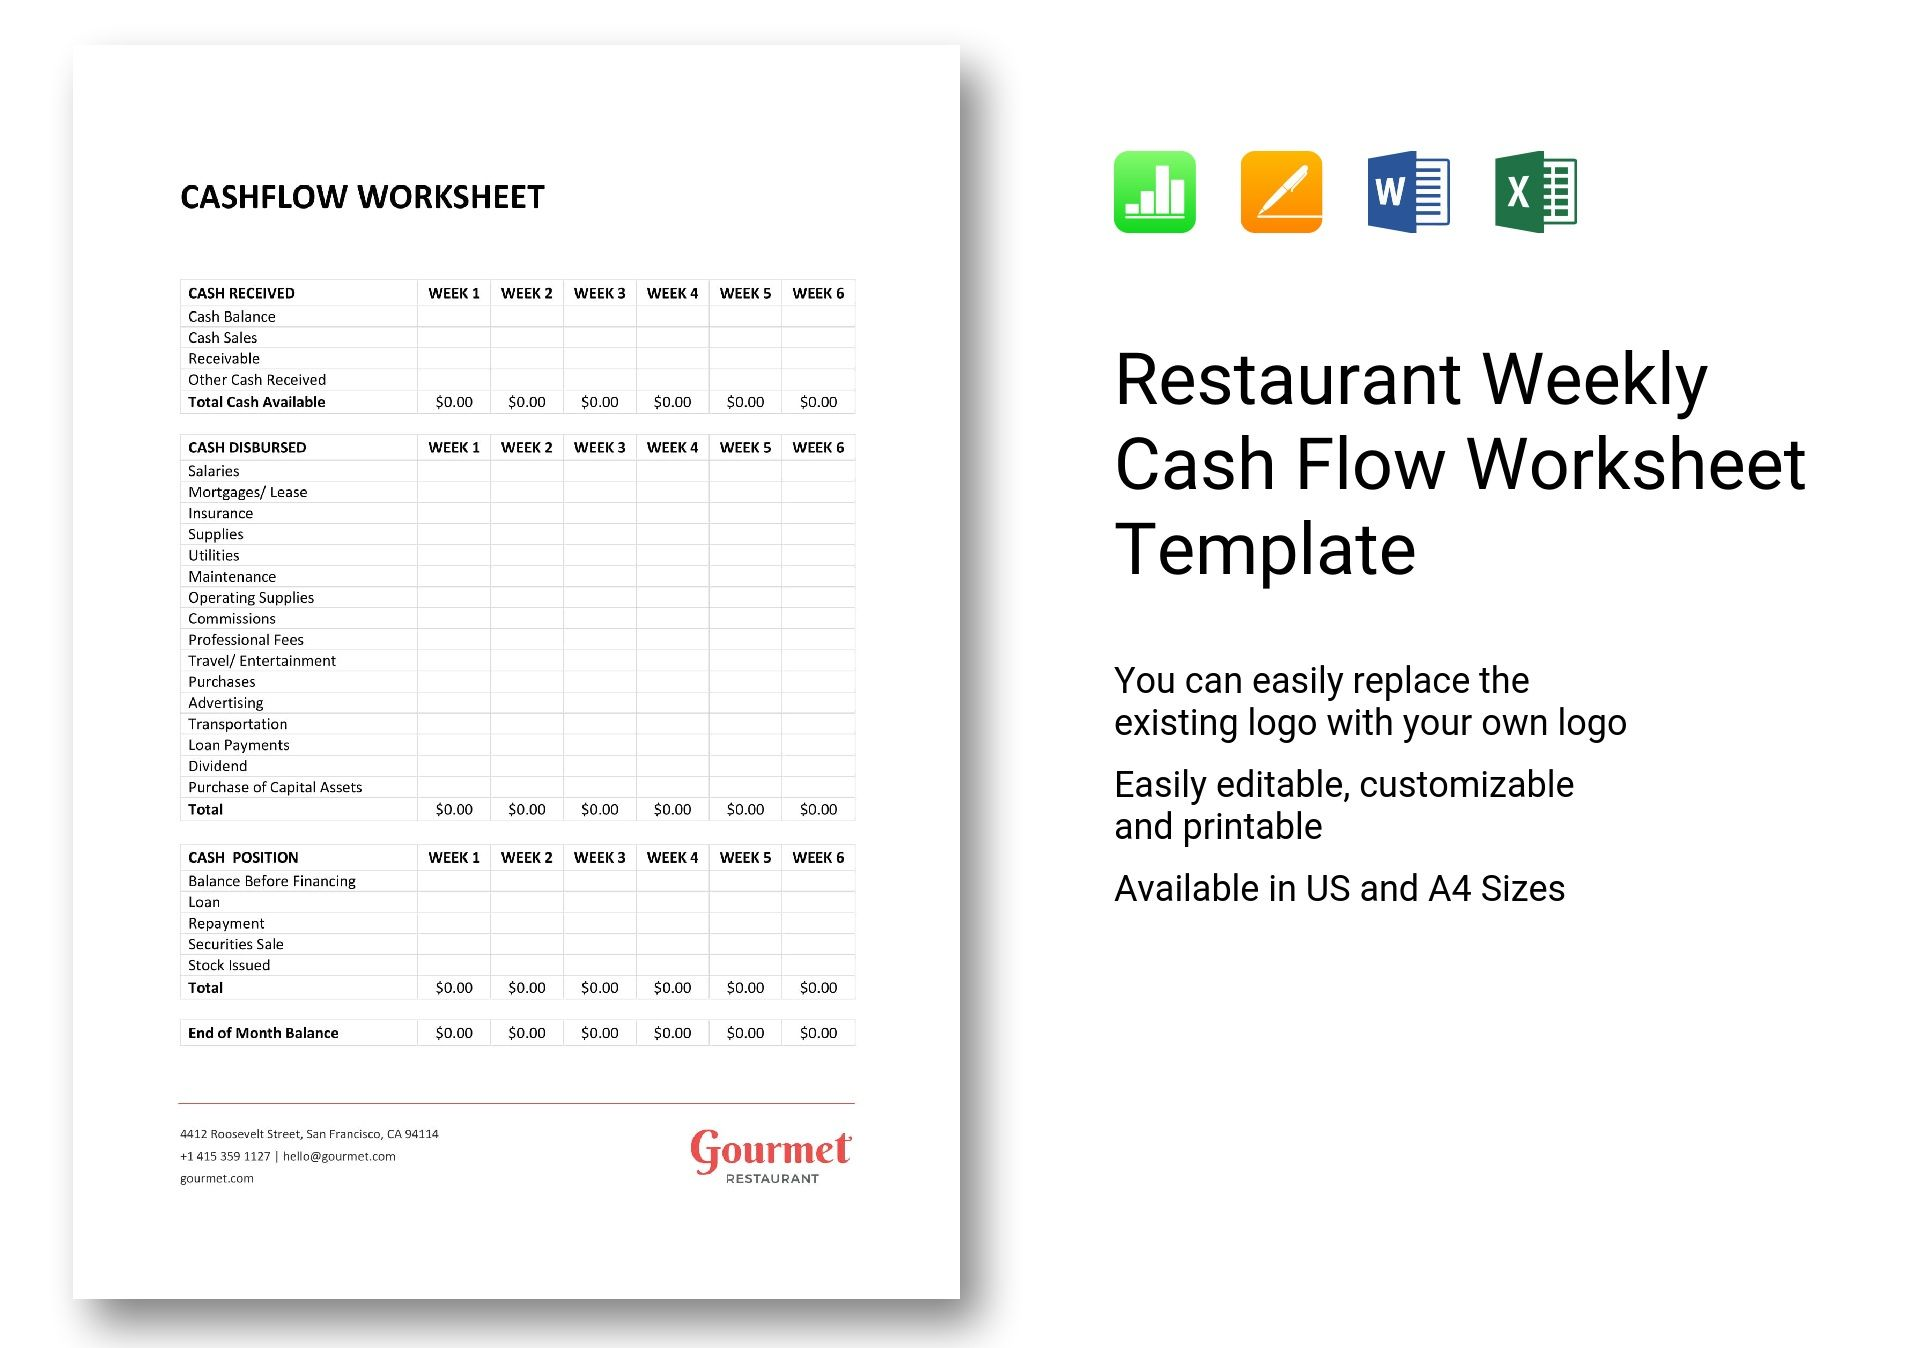 Restaurant Weekly Cash Flow Worksheet Template In Word